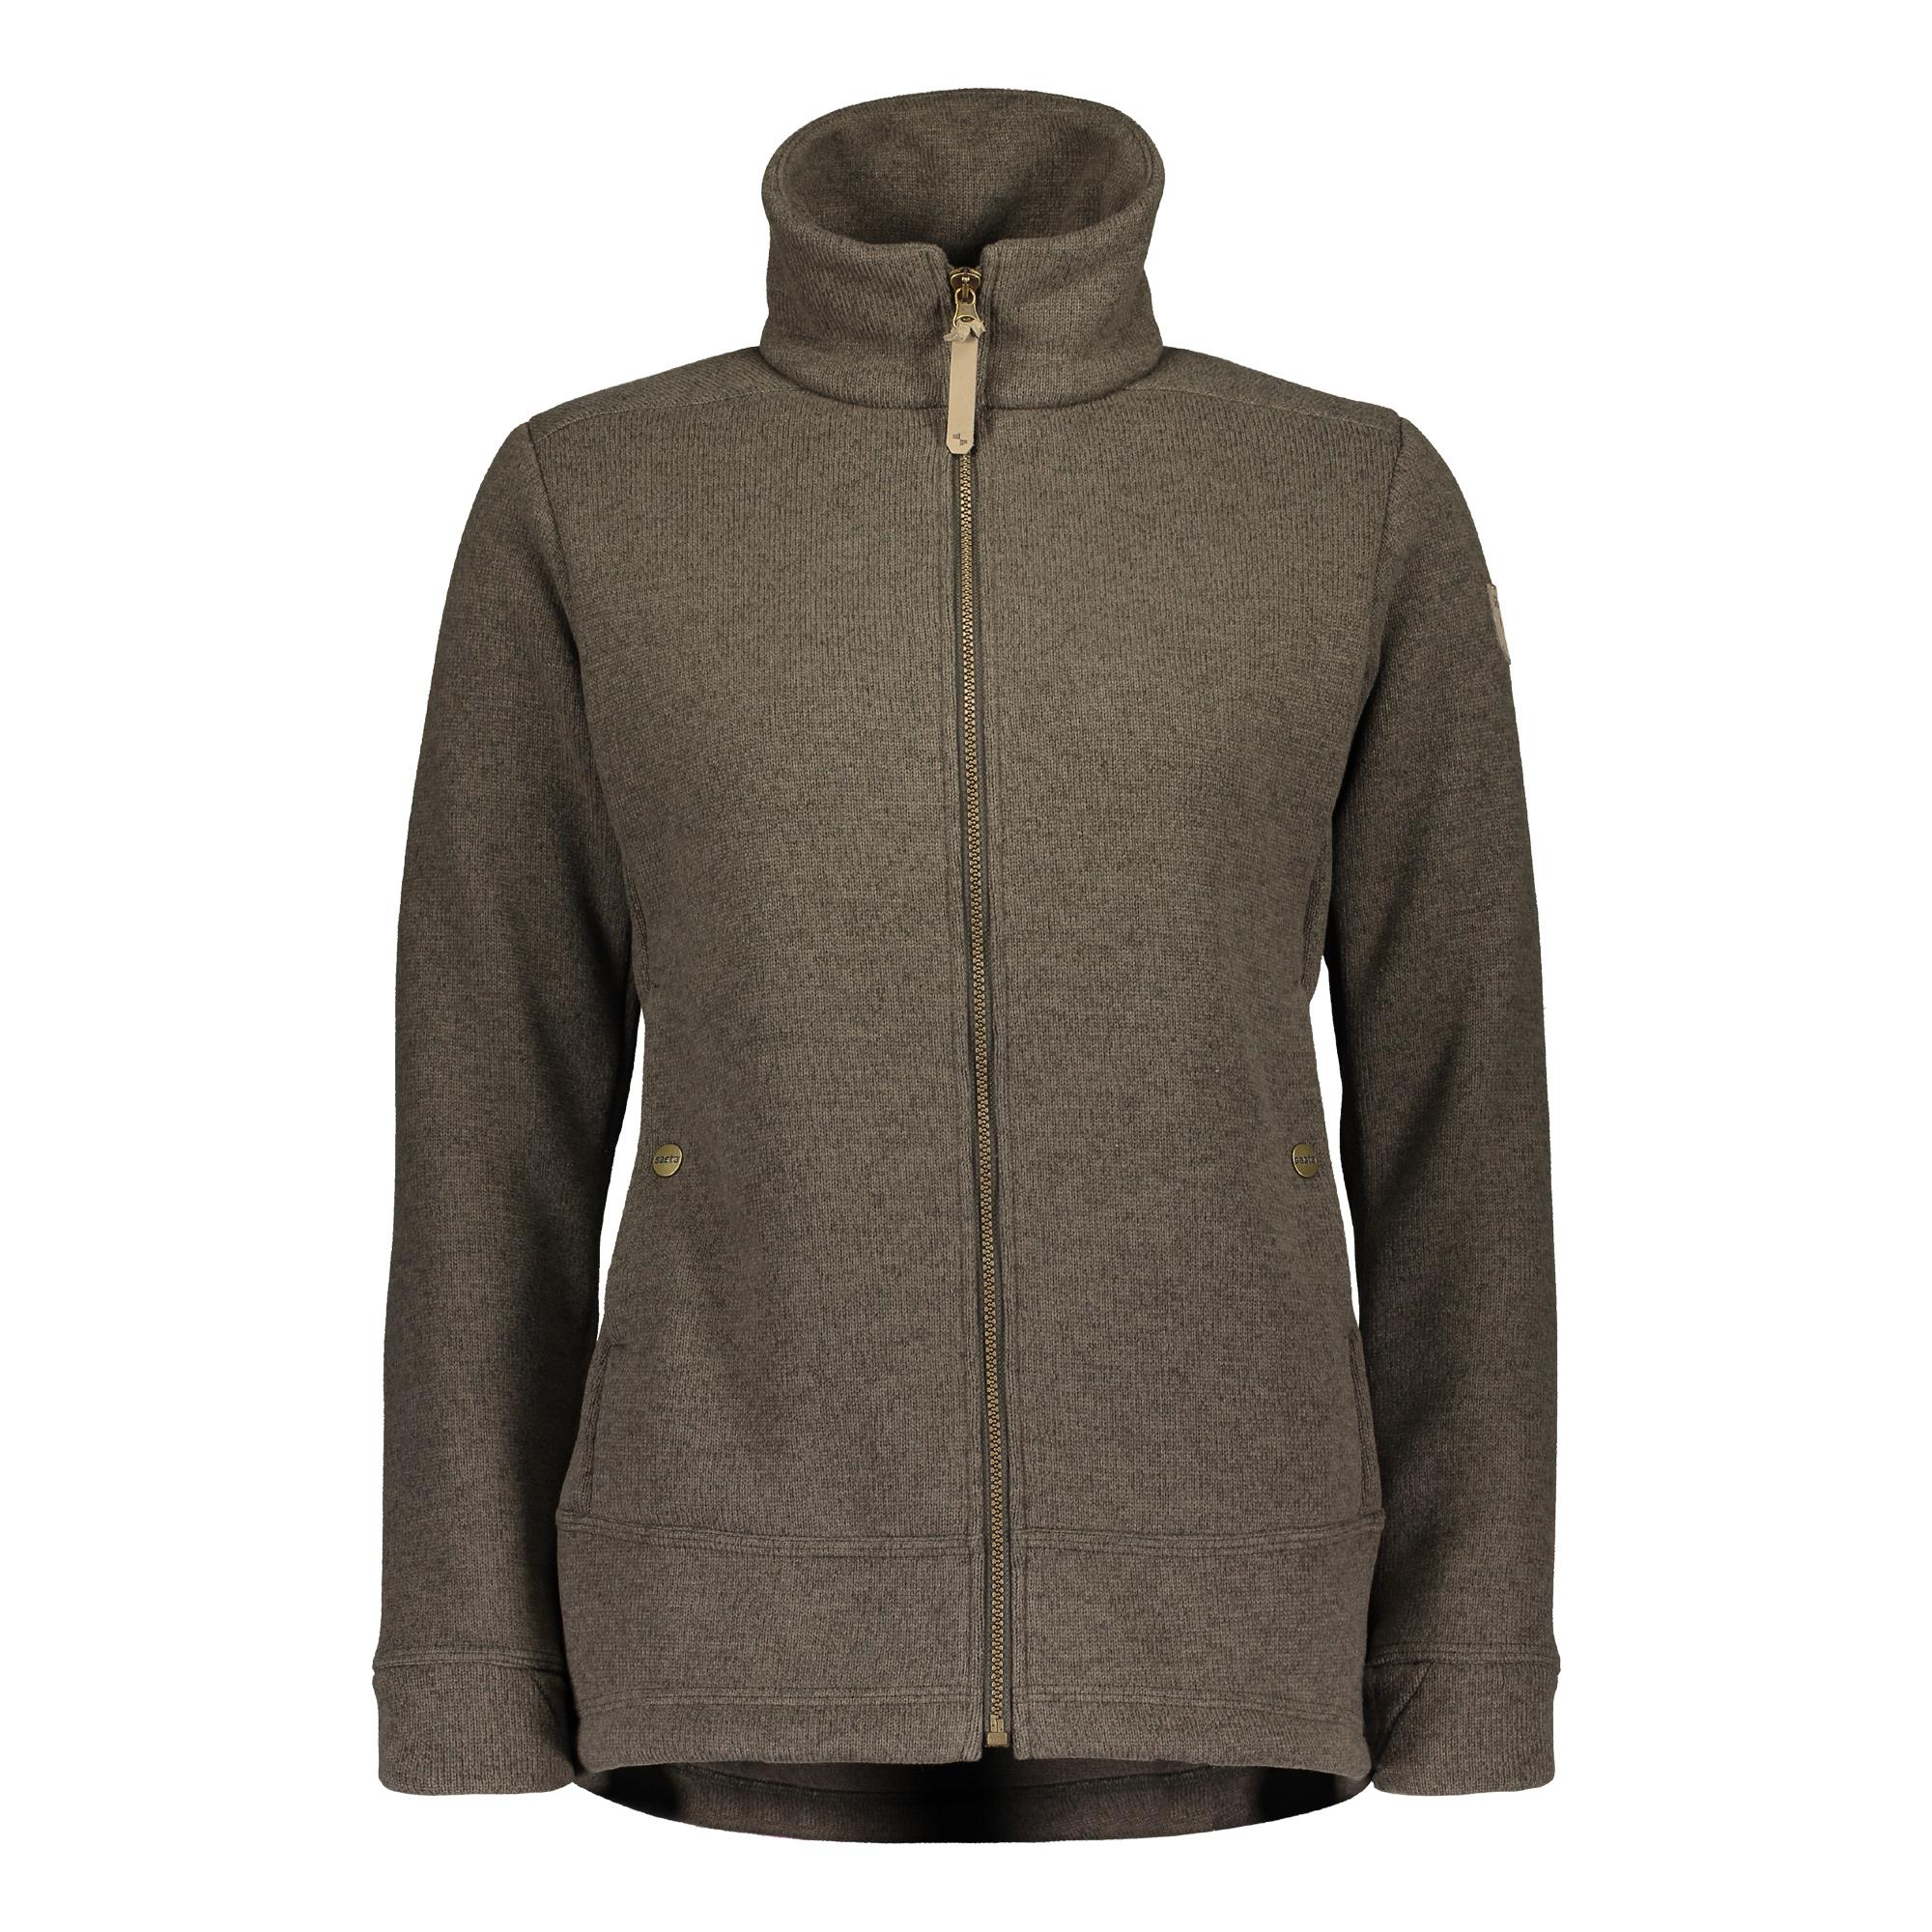 Sasta Vilja Fleece Jacka